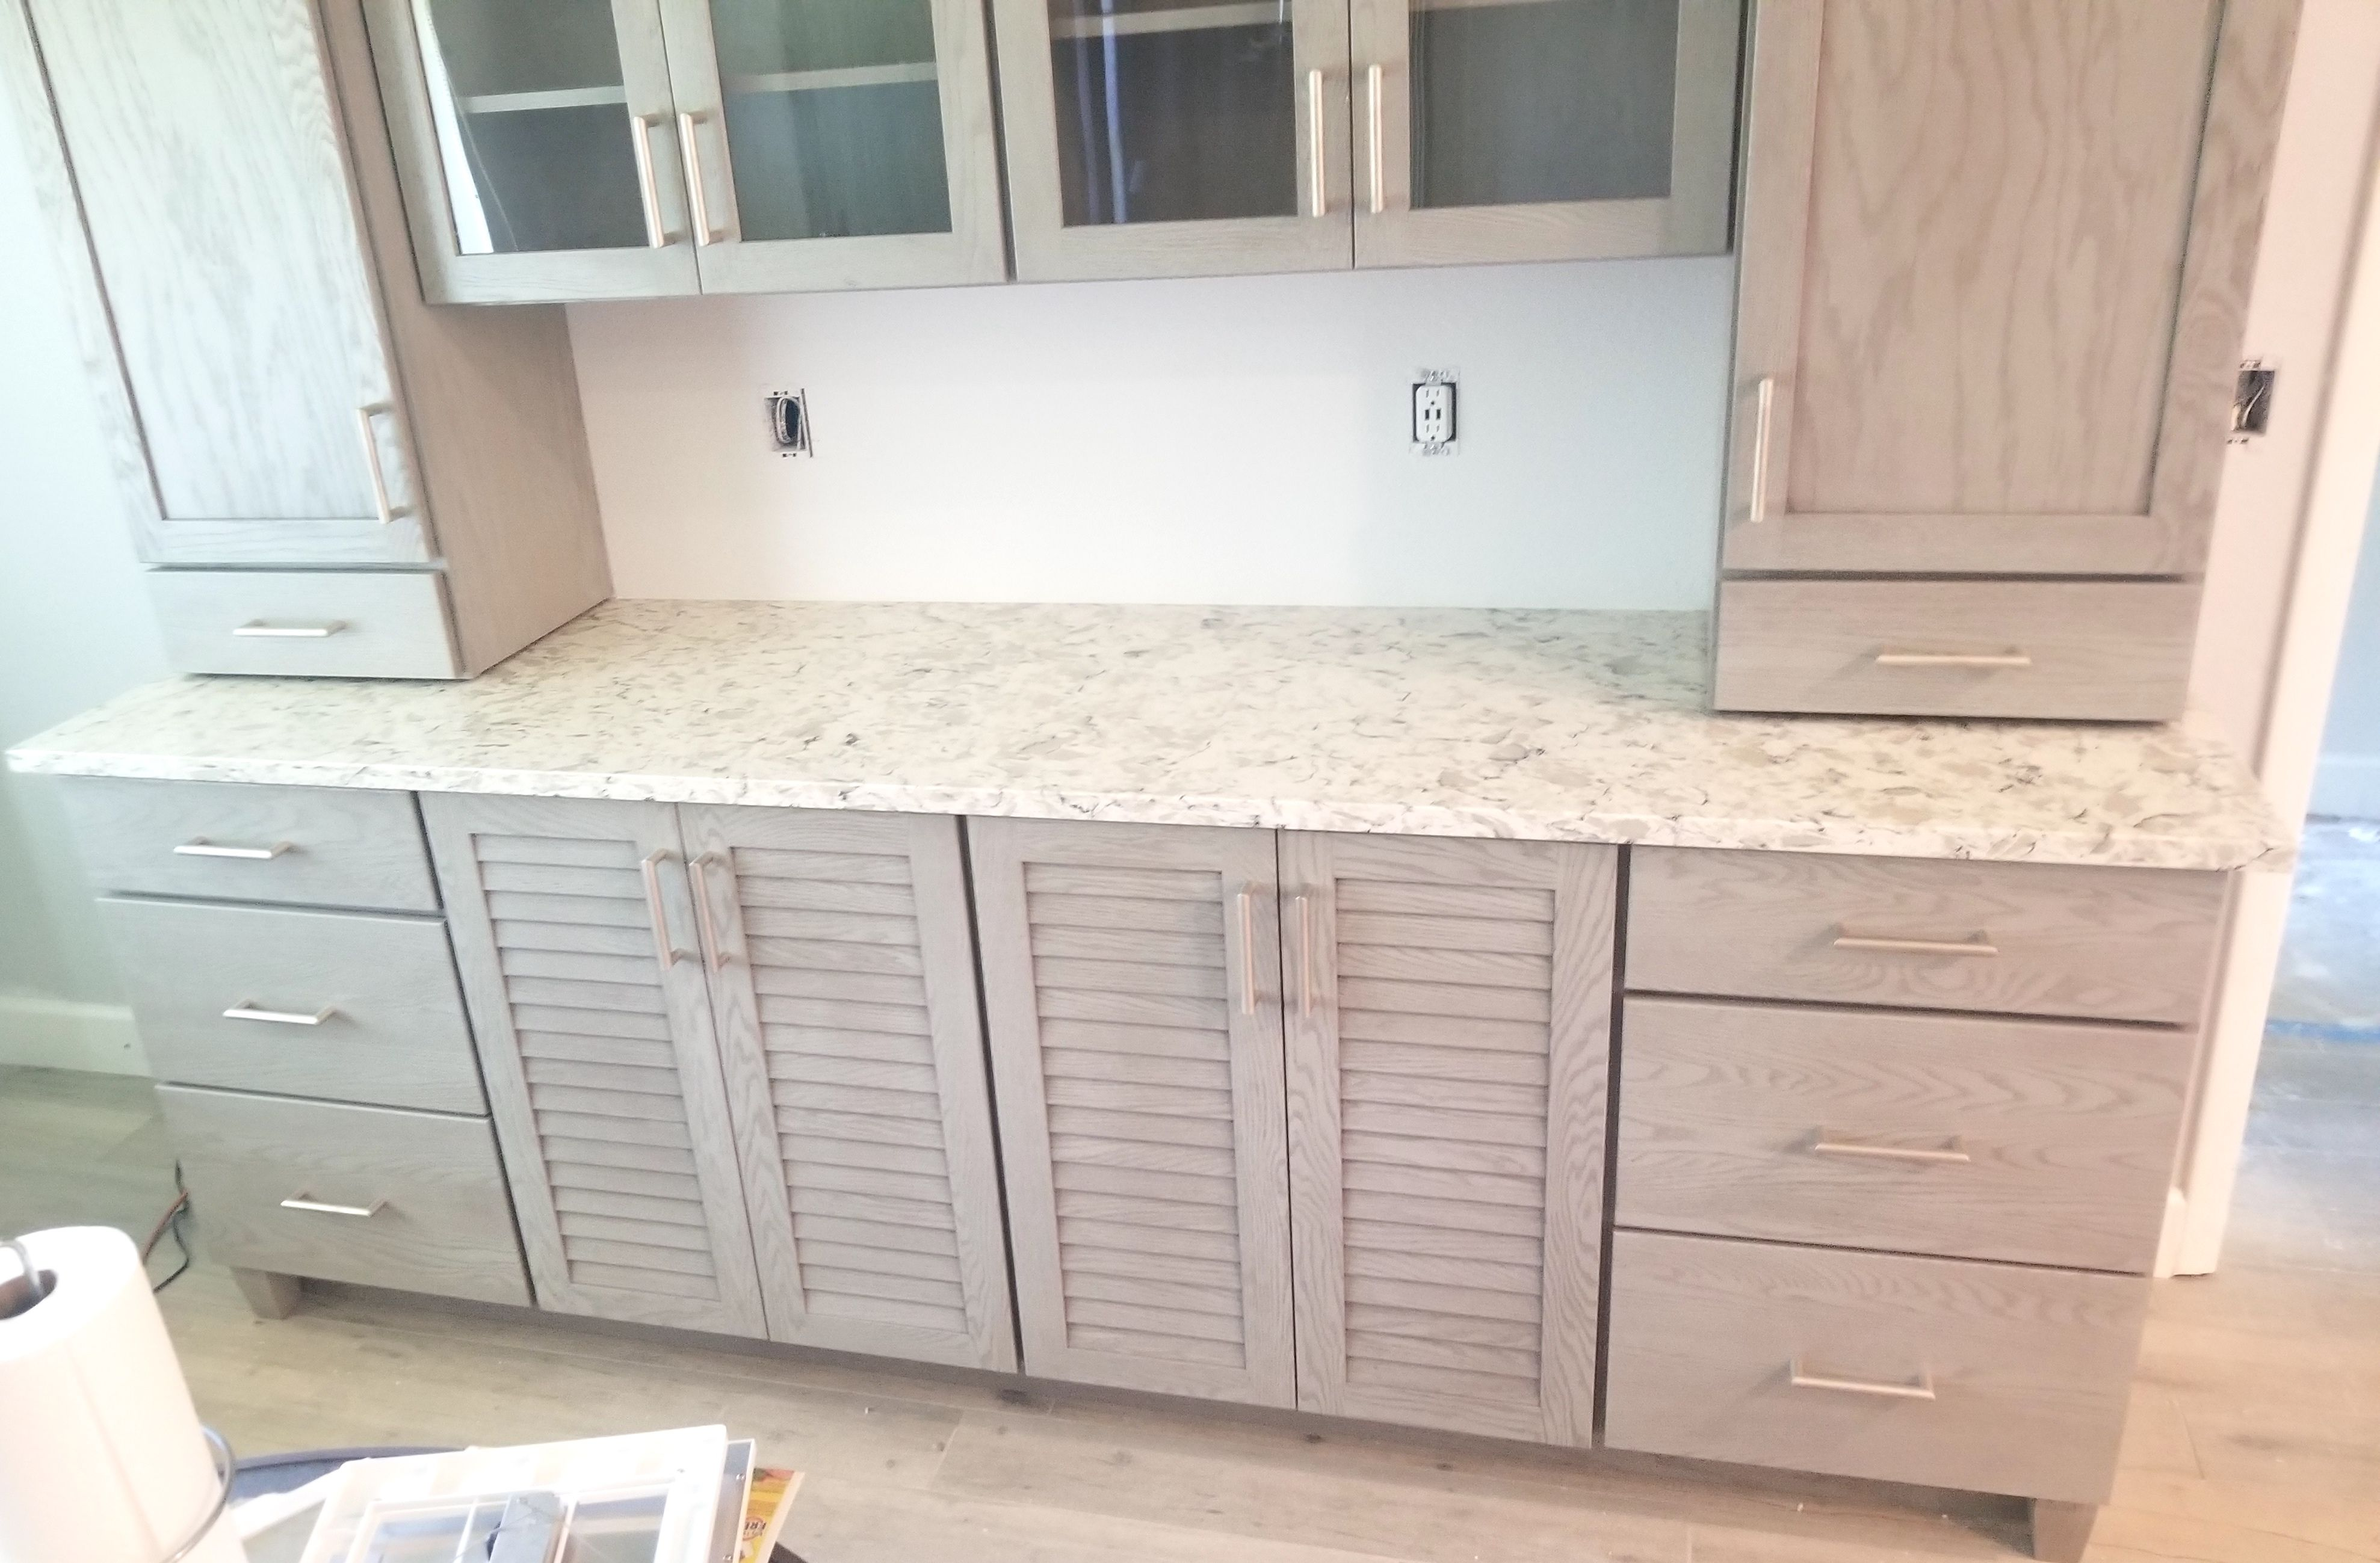 Magnificent Selinas Phoenix Quartz Used For Countertop With Polished Light Beige Cabinets Giving It A Nice Sleek Beige Cabinets Countertops Kitchen Countertops